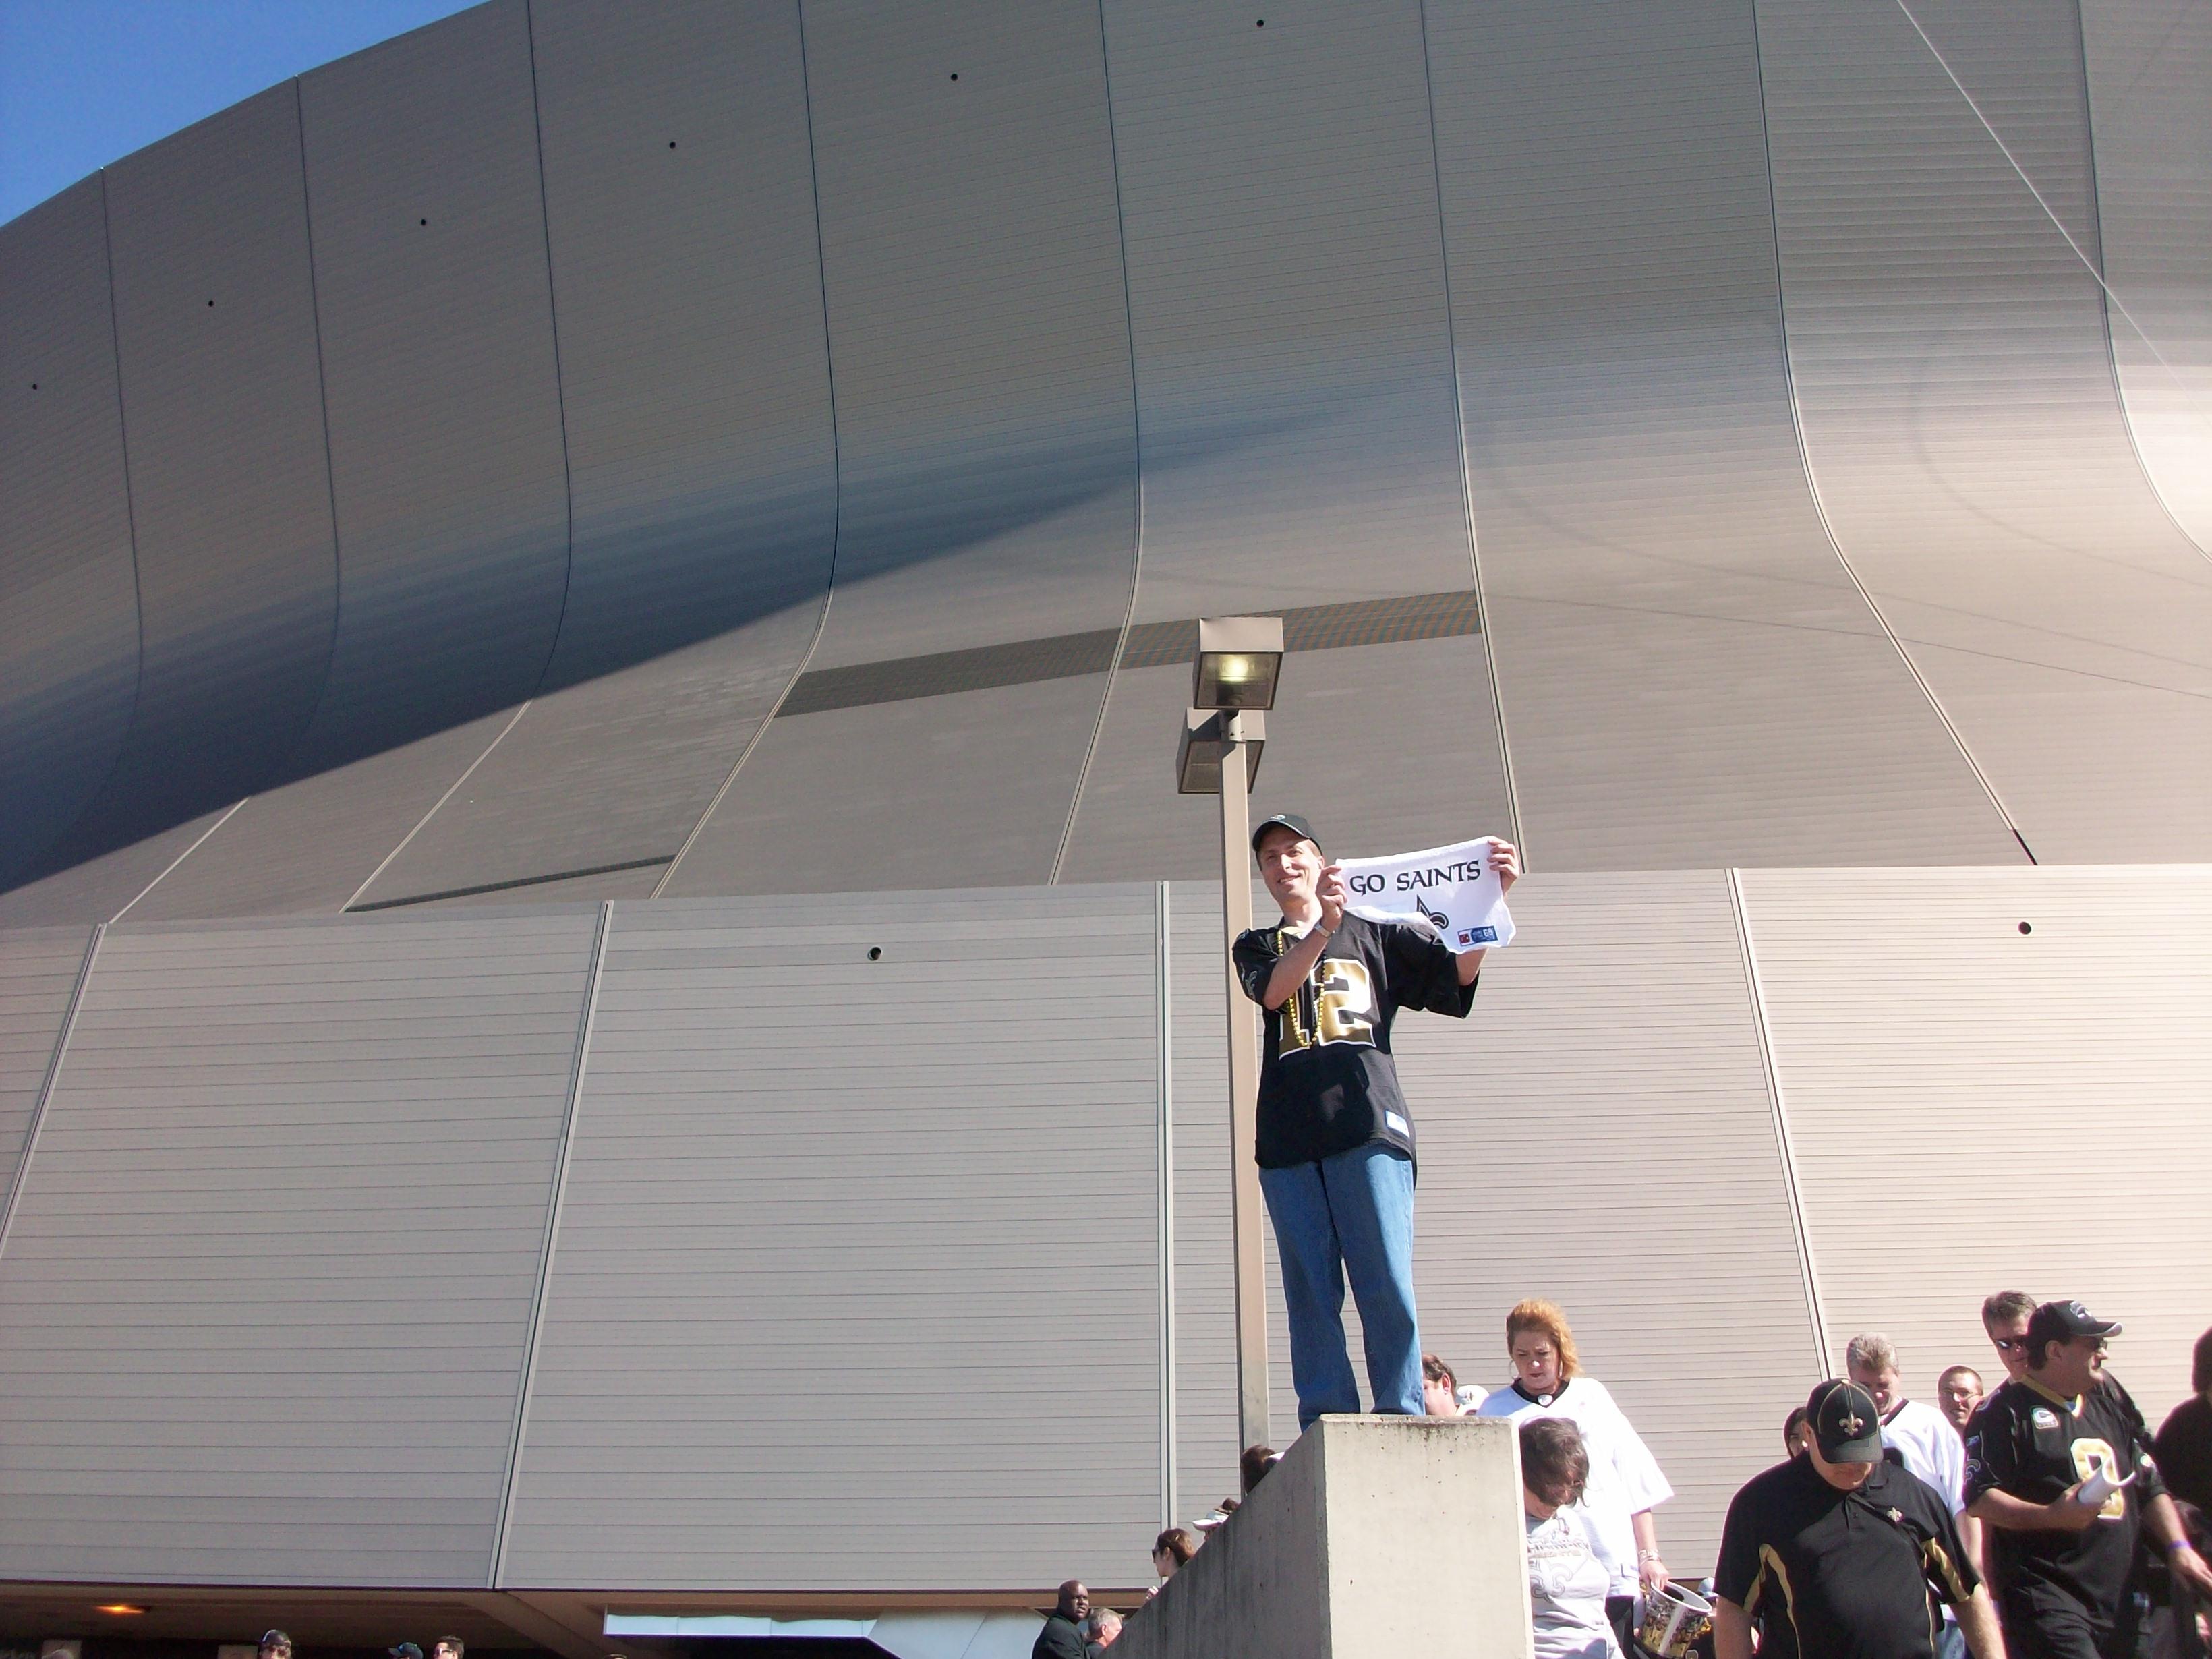 Breathing a sigh of relief after the Saints close win today at the Superdome.